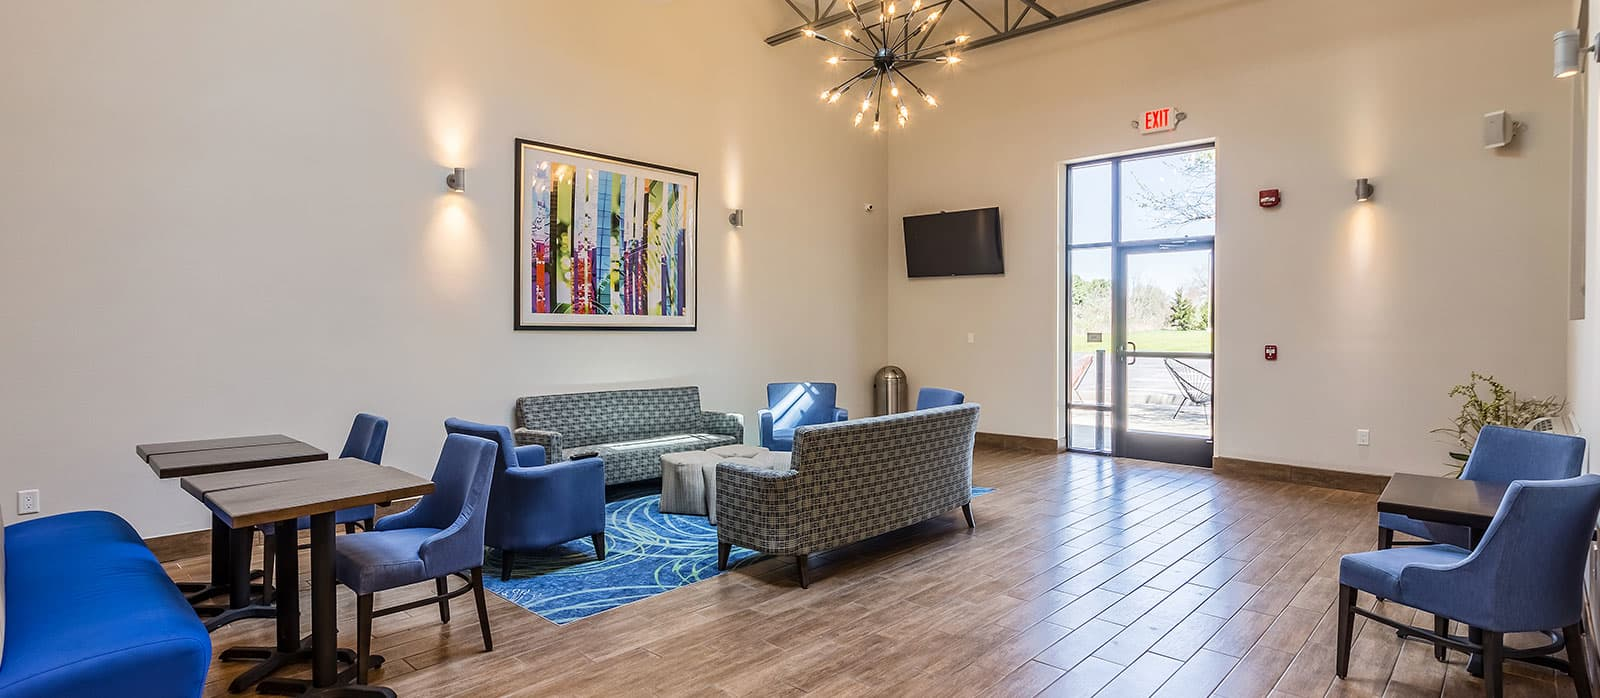 Allentown Park Hotel, an Ascend Hotel Collection Member Services